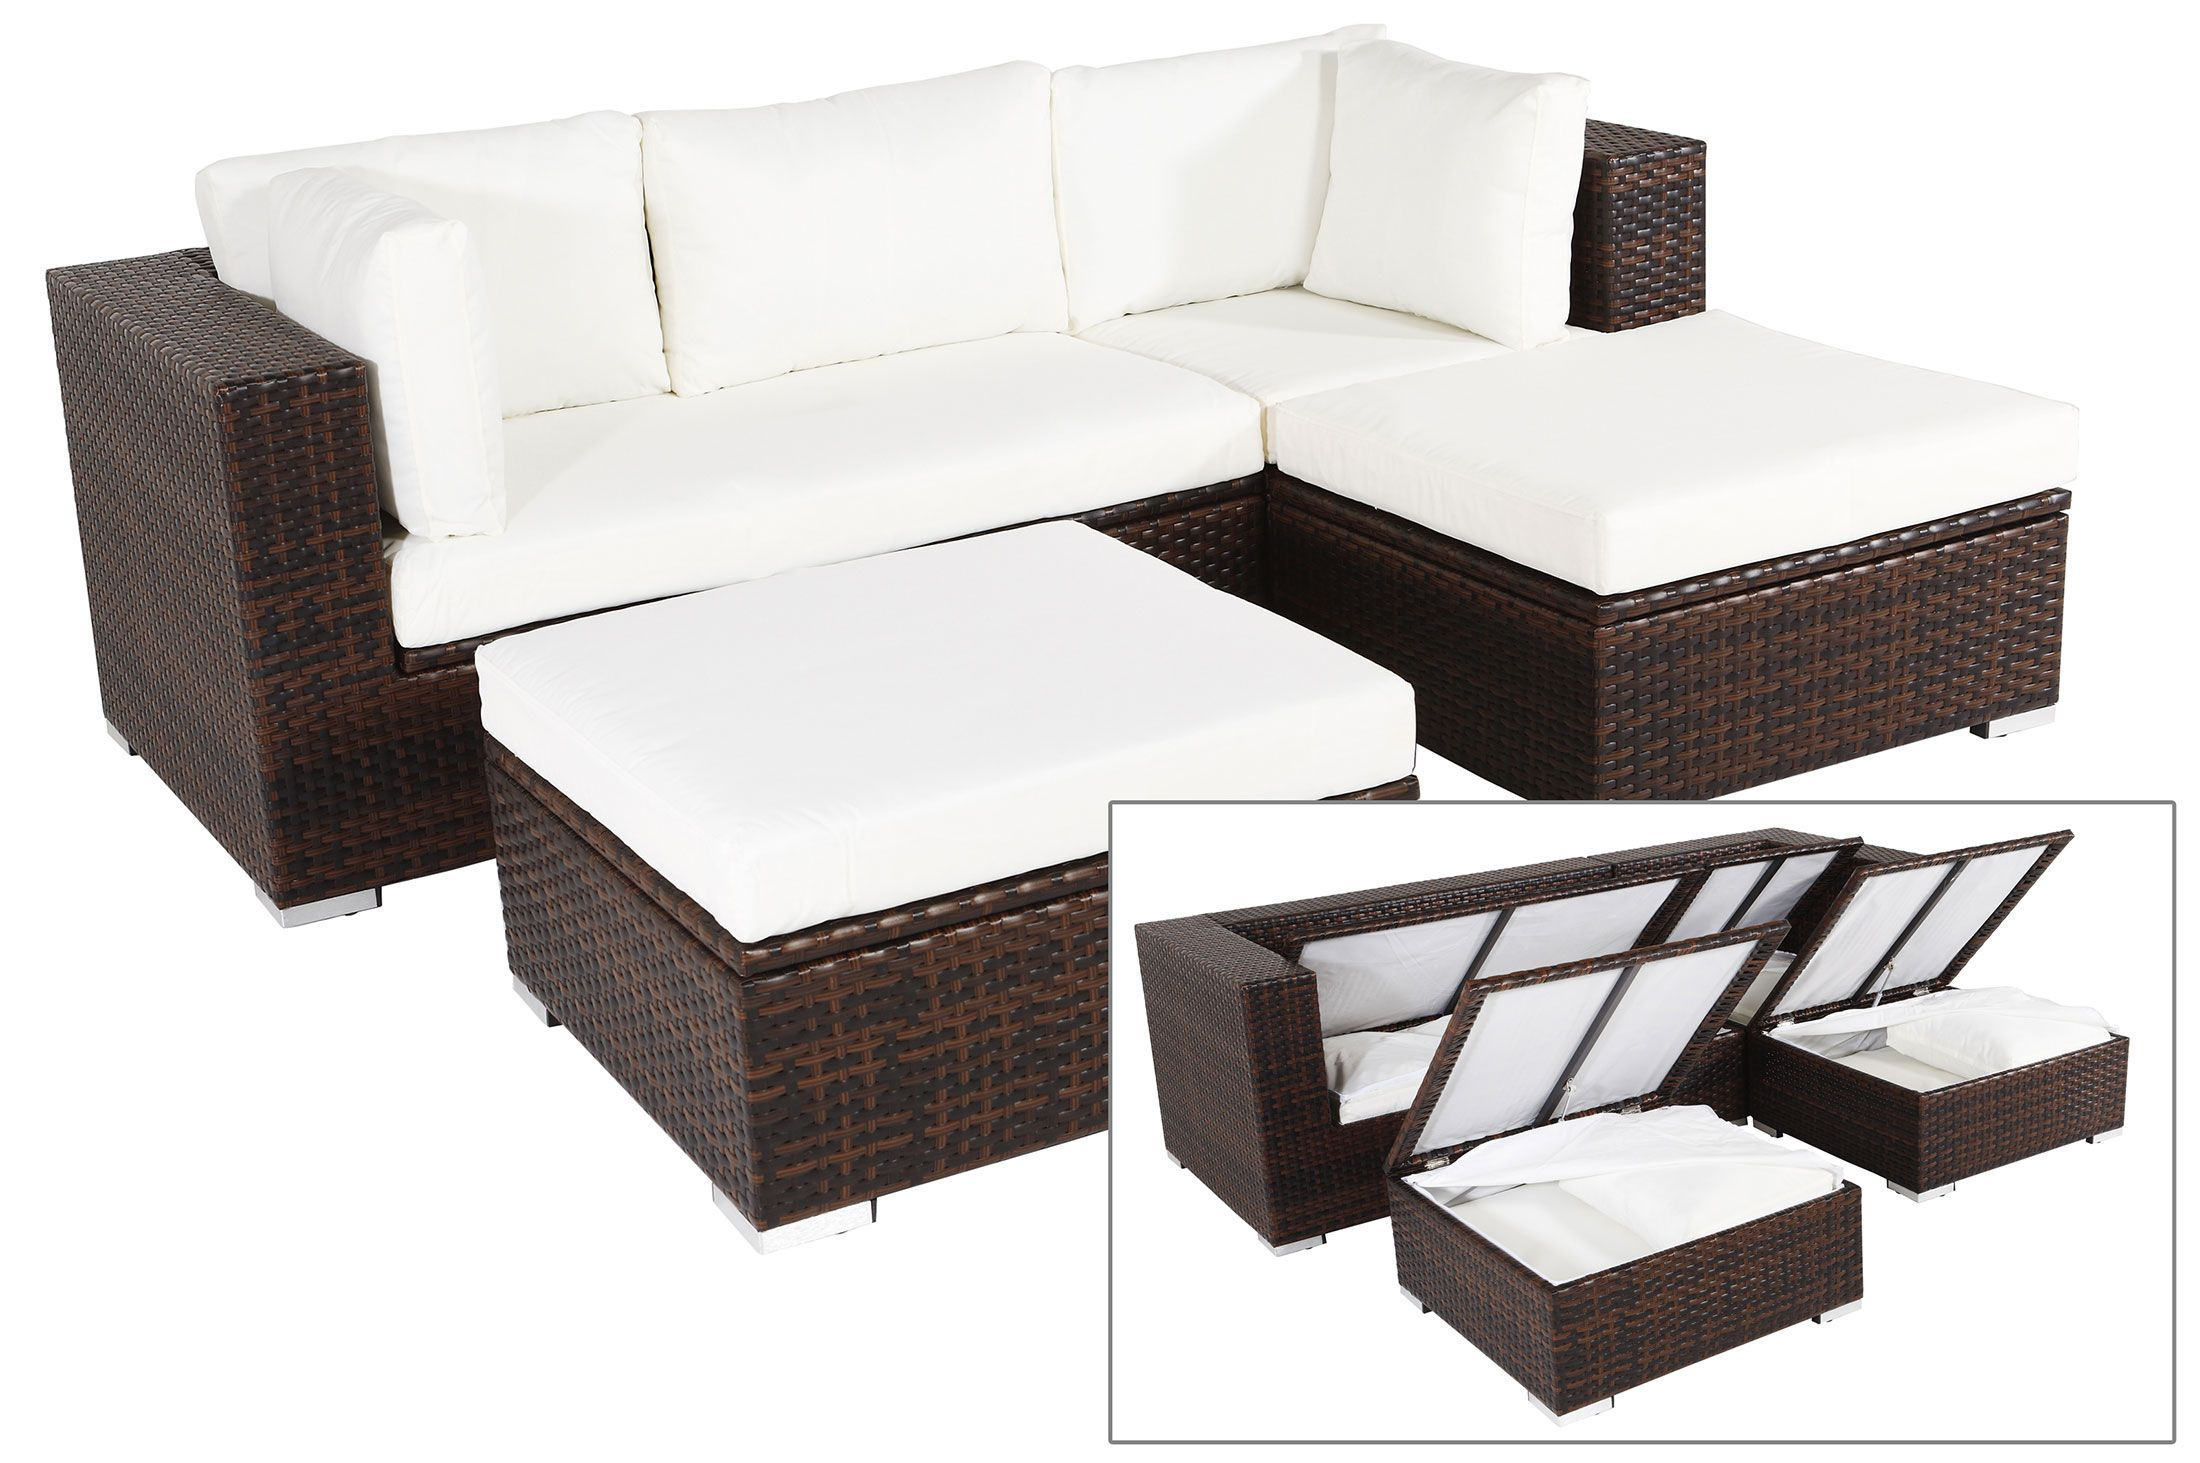 Gartenmbel Rattan Set. Finest Perfekt Set Gartenmbel Sets With ...